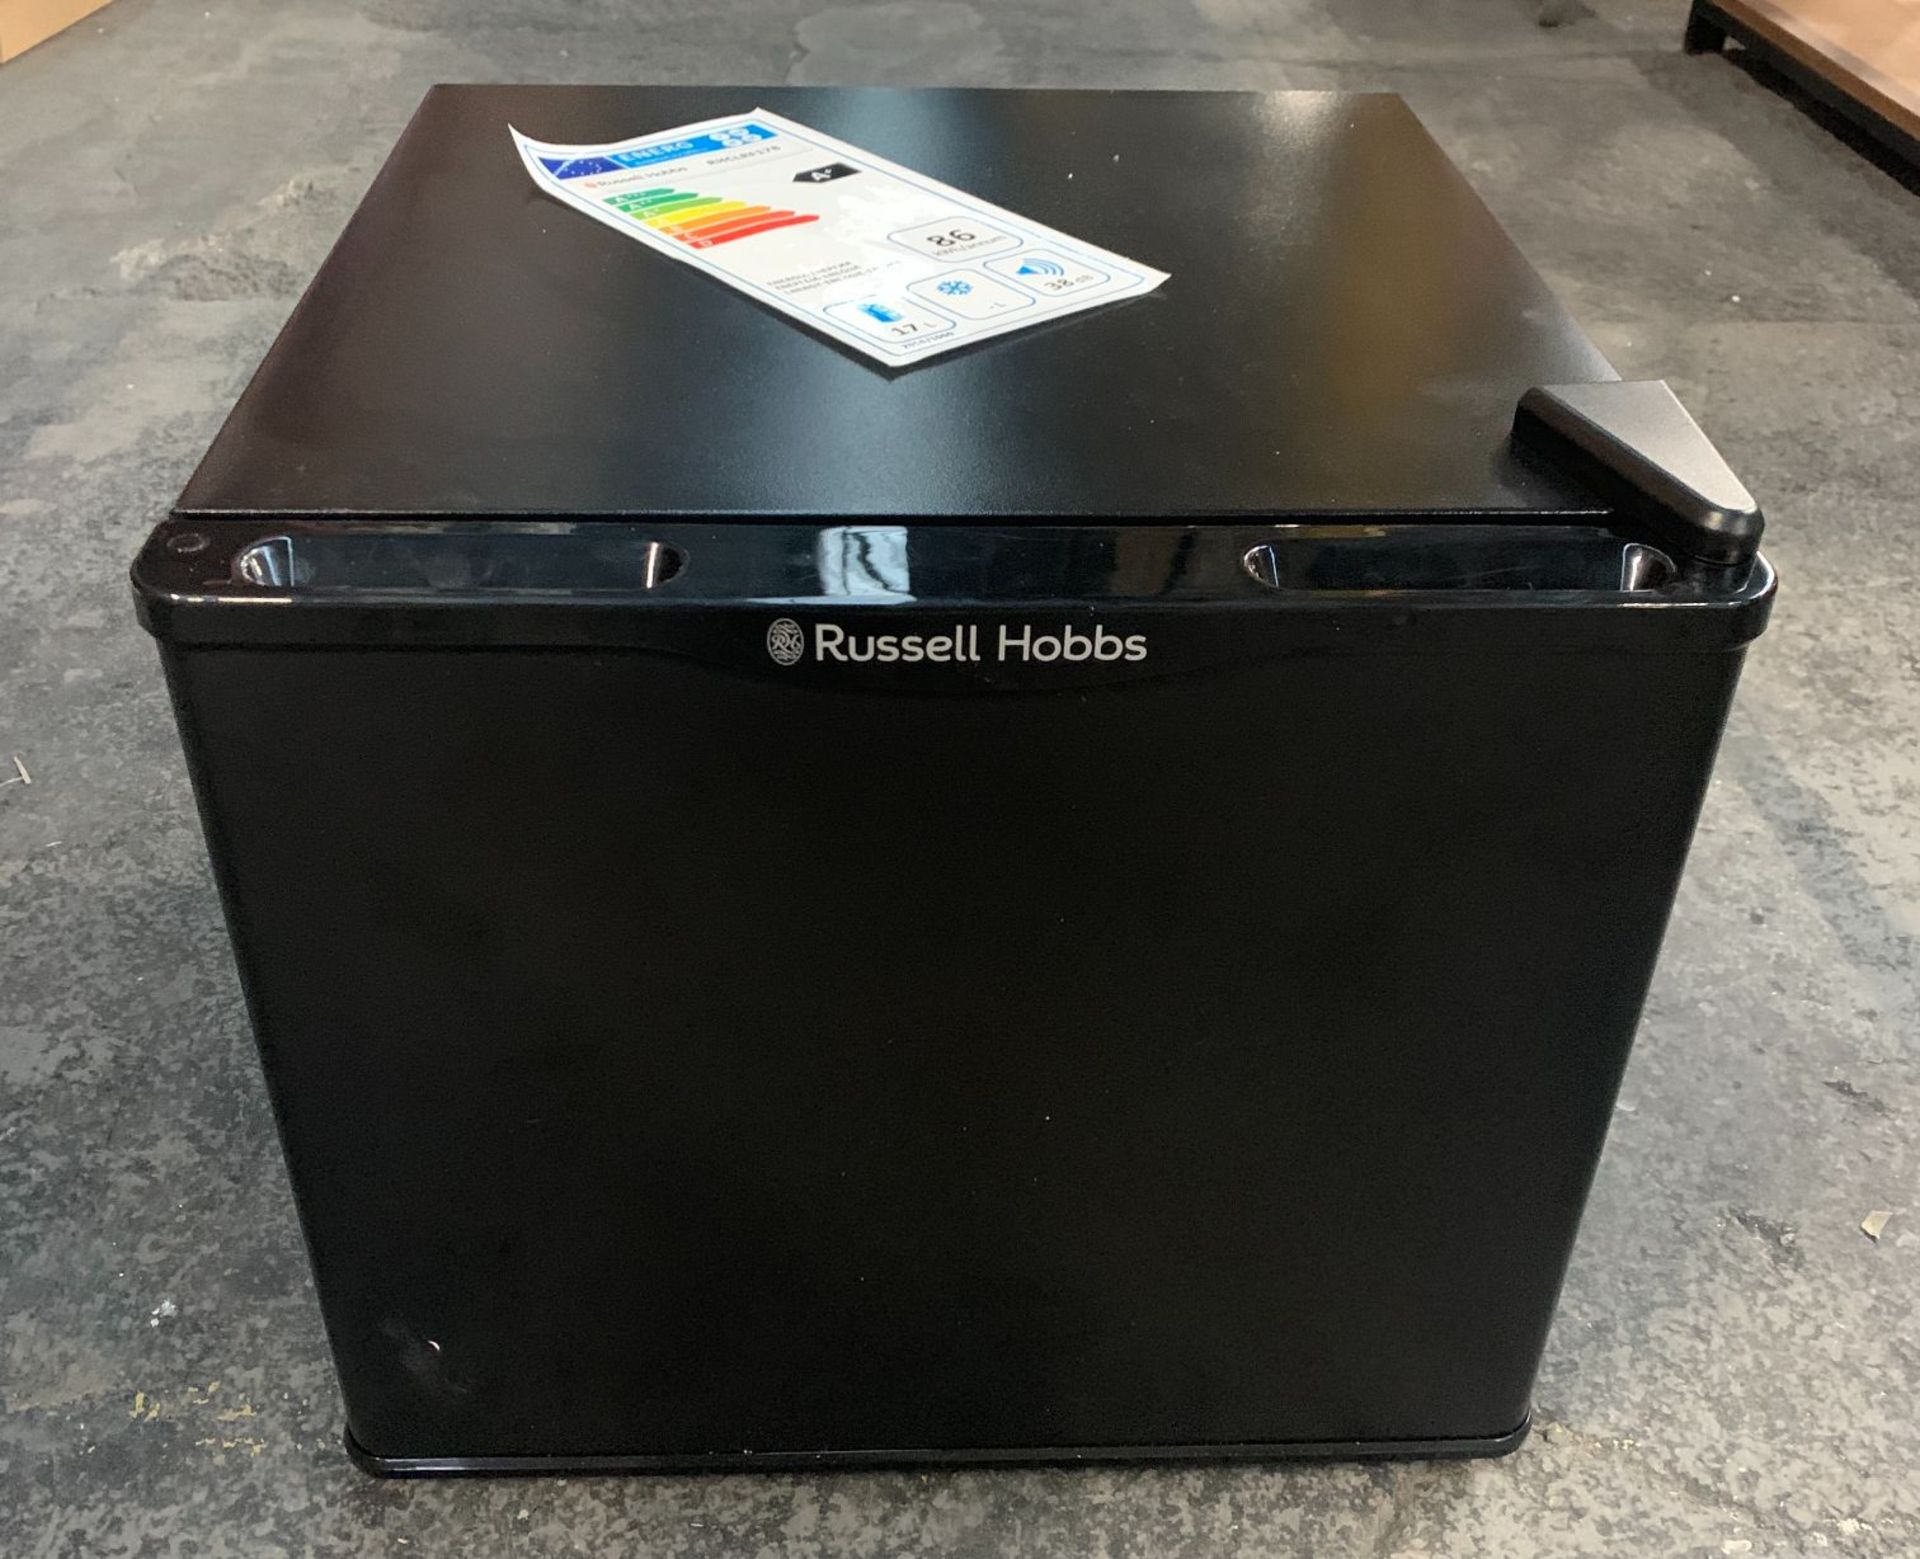 RUSSELL HOBBS RHCLRF17B TABLE TOP COOLER